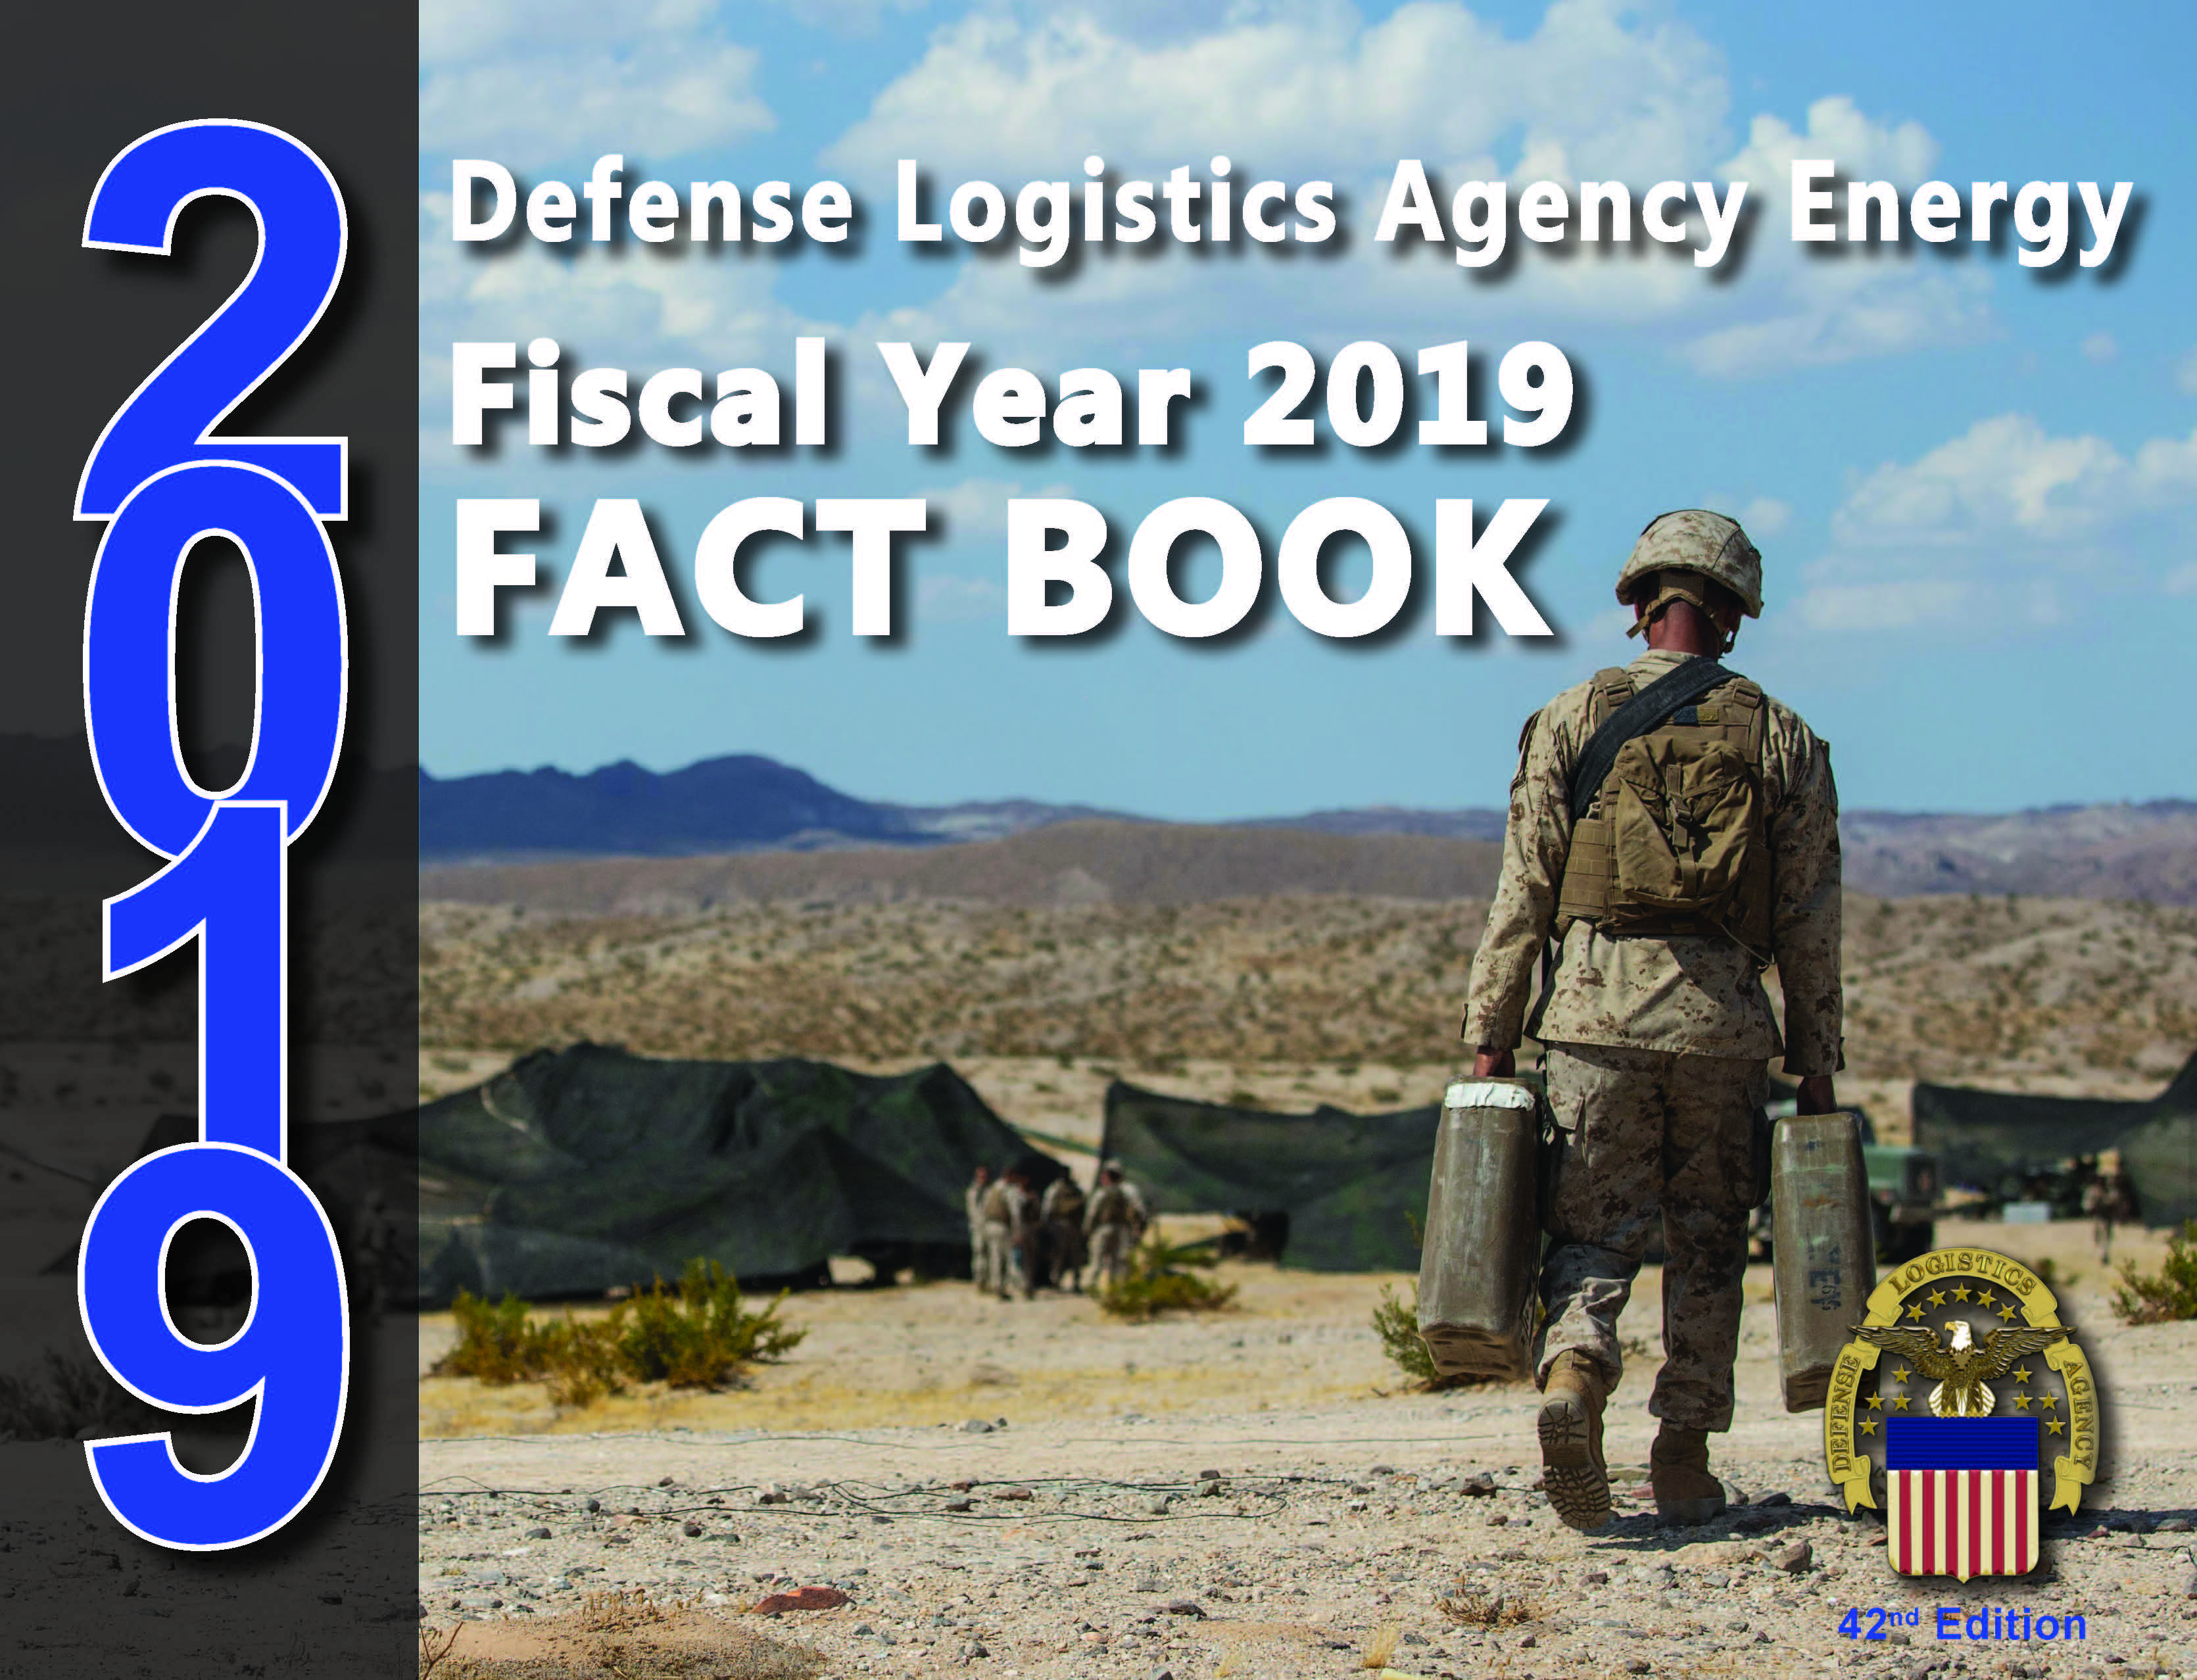 DLA Energy FY19 Fact Book